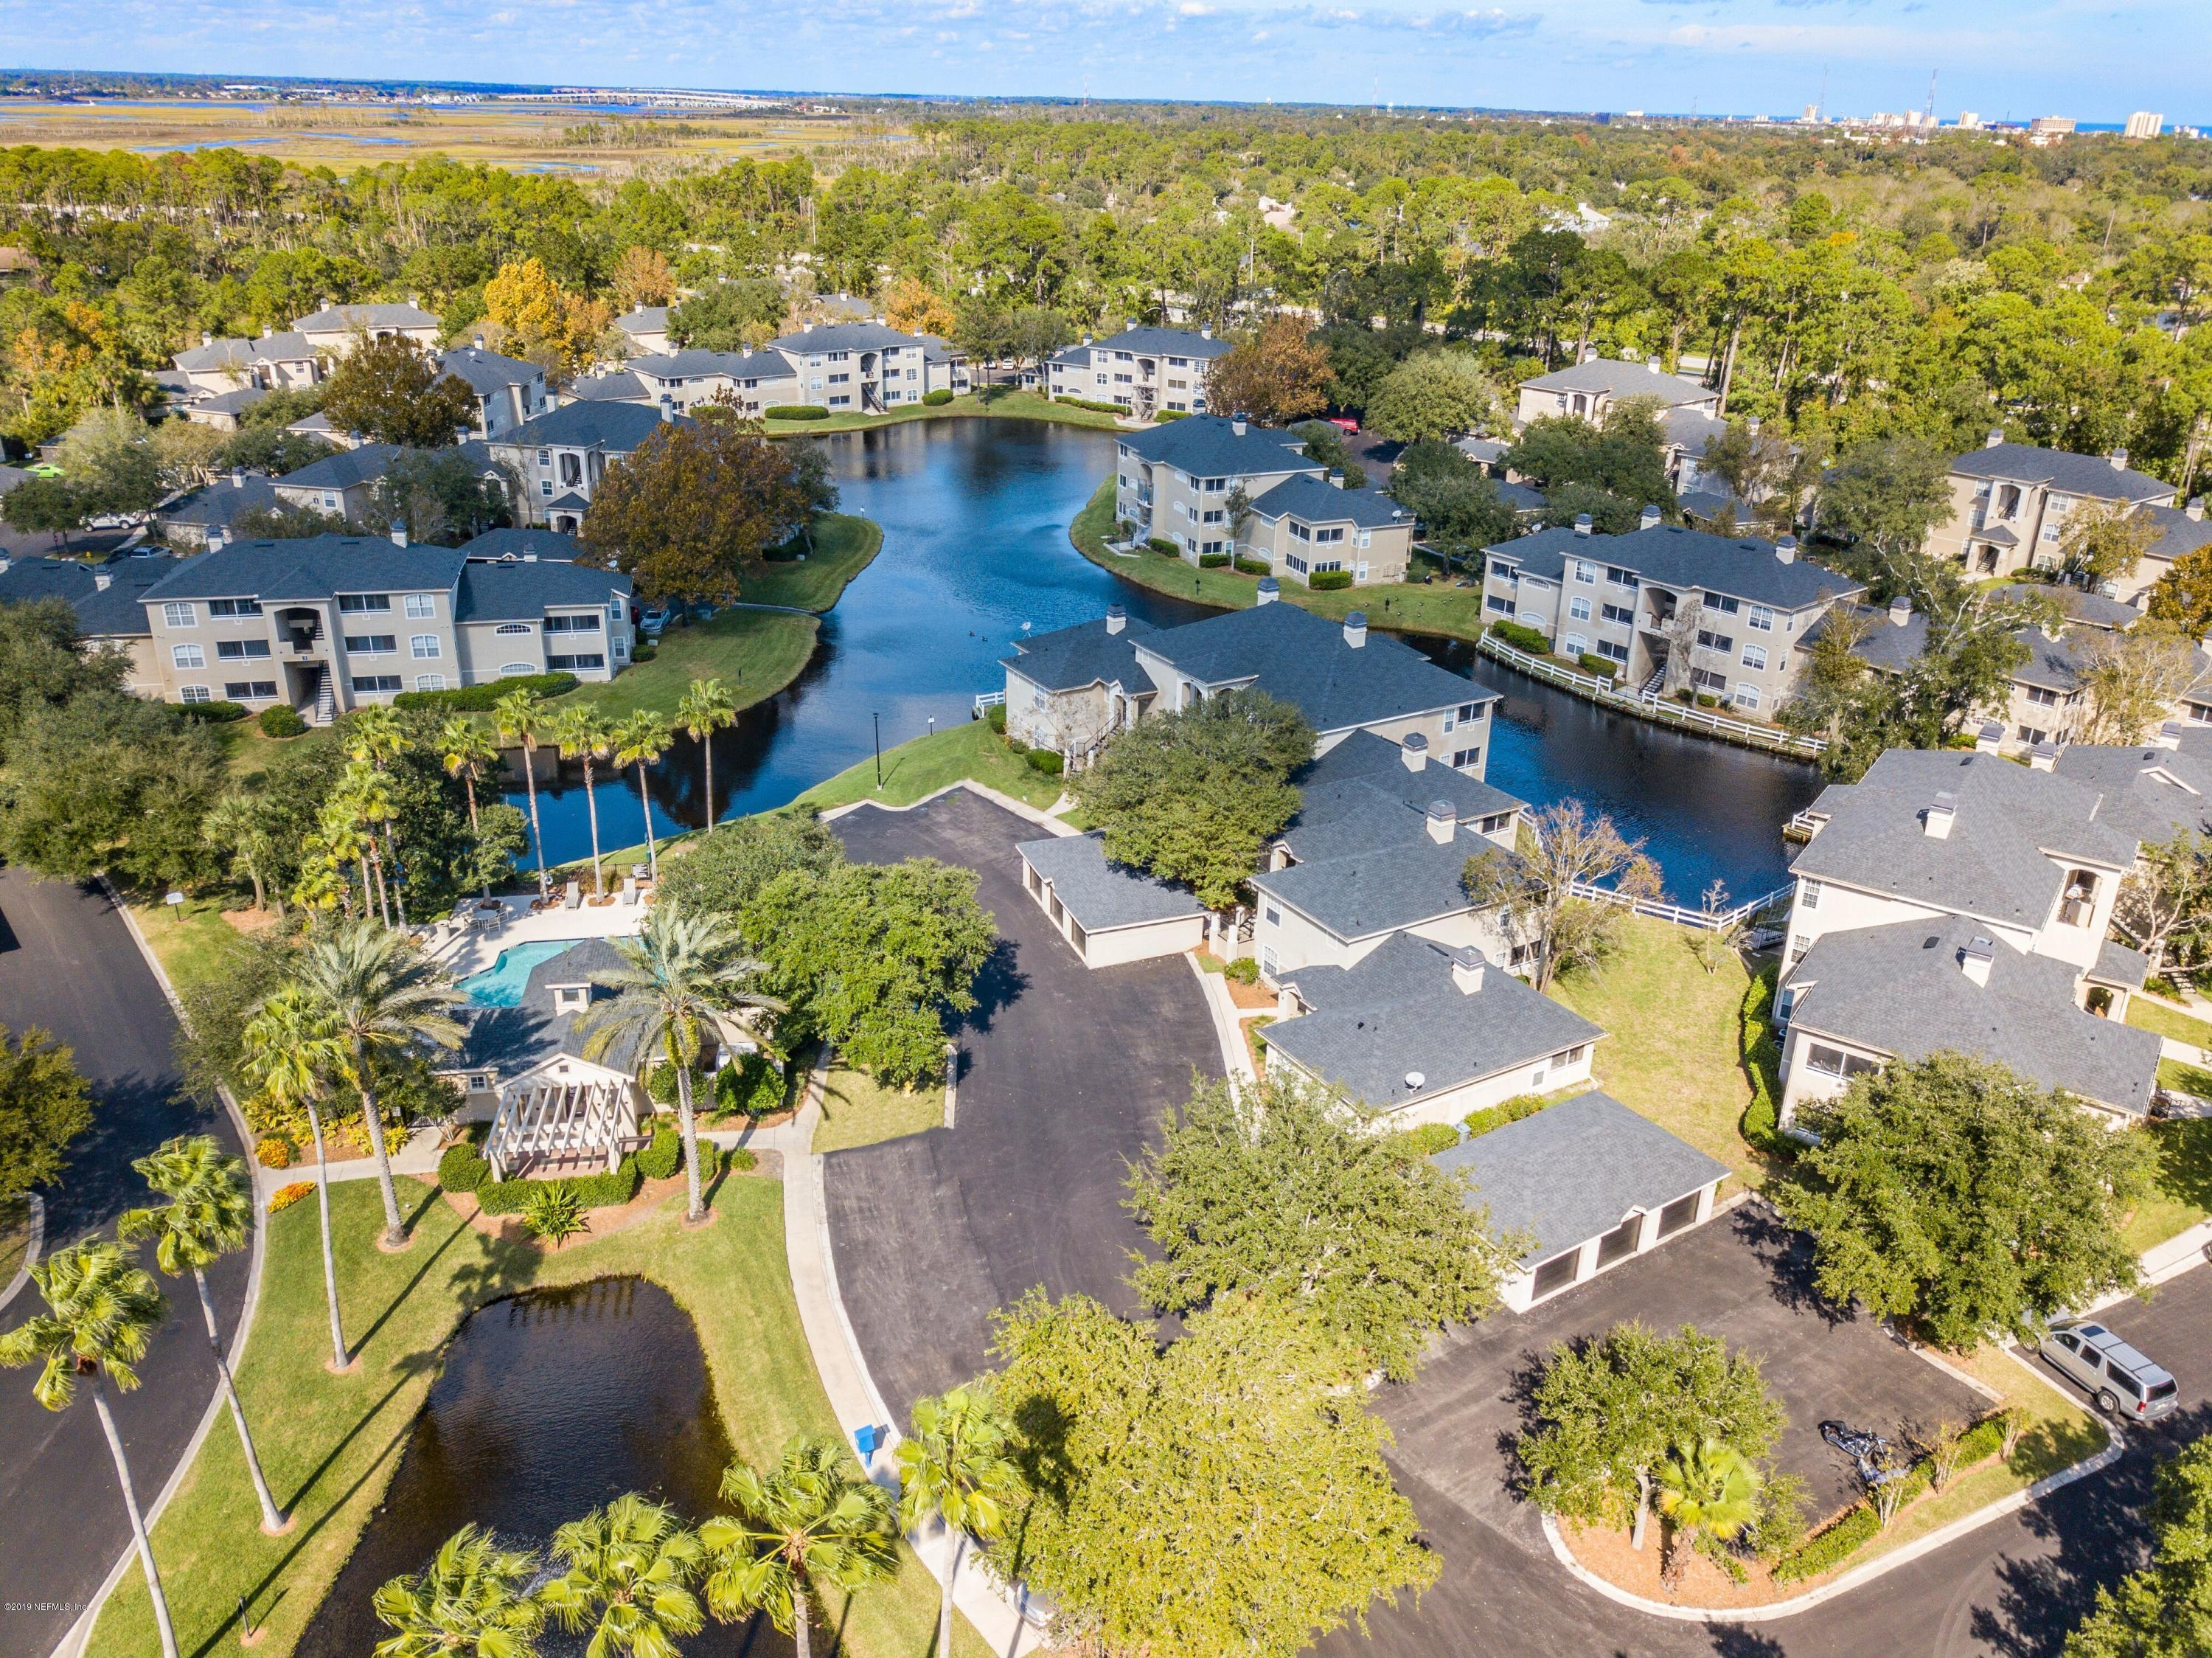 1655 THE GREENS- JACKSONVILLE BEACH- FLORIDA 32250, 3 Bedrooms Bedrooms, ,2 BathroomsBathrooms,Condo,For sale,THE GREENS,997522